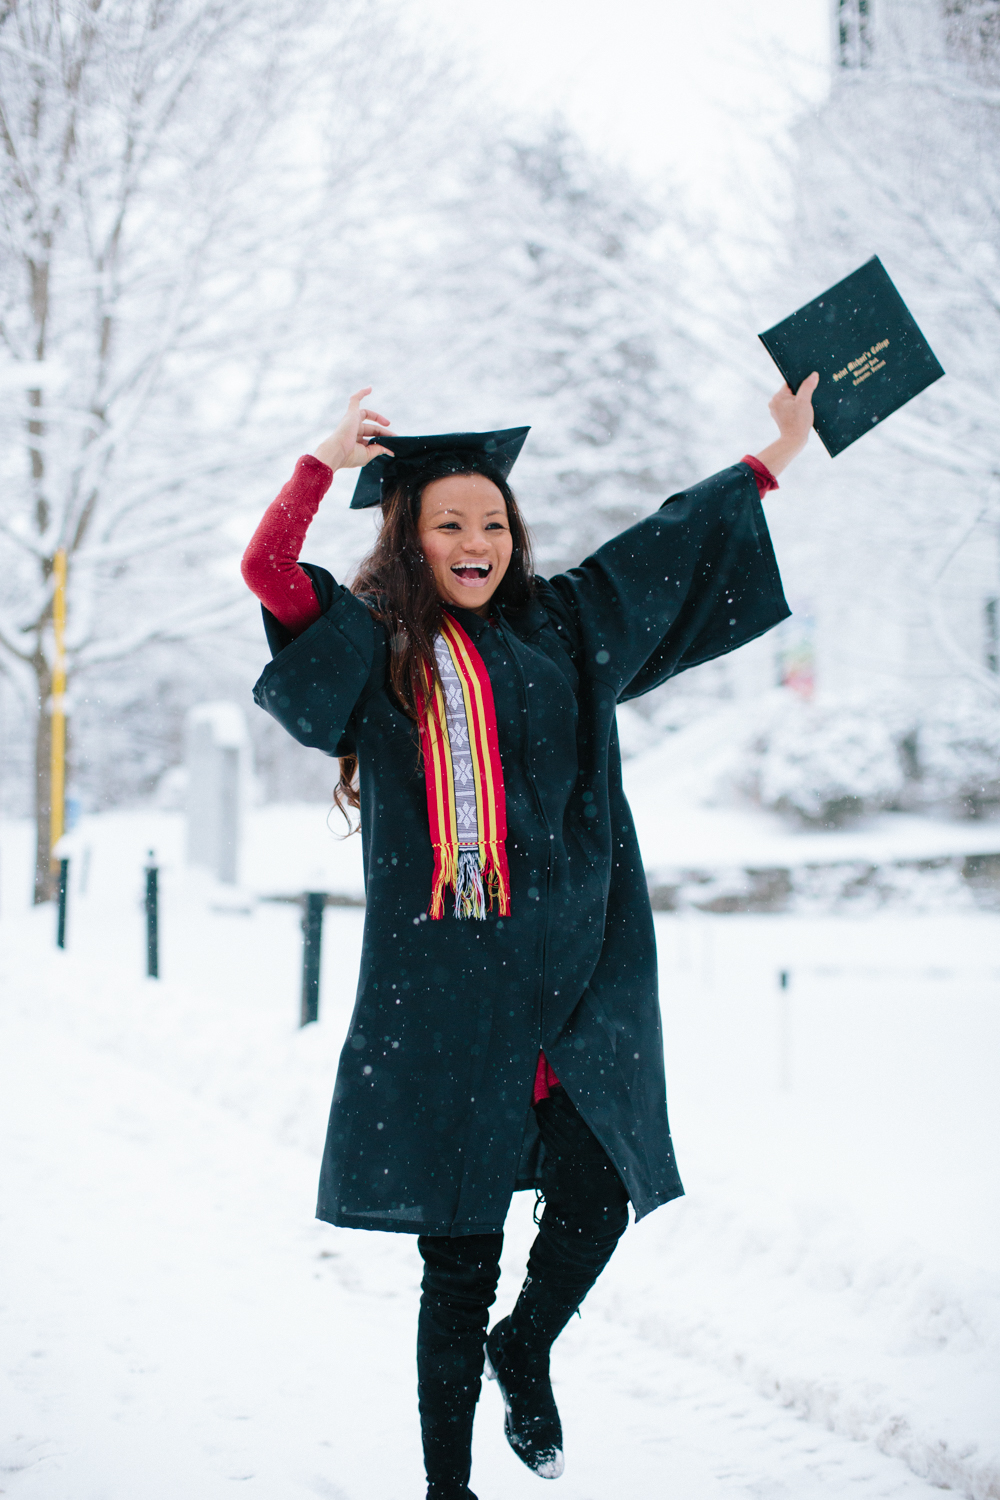 Raina, wearing a cap and gown, dancing in the snow with her diploma